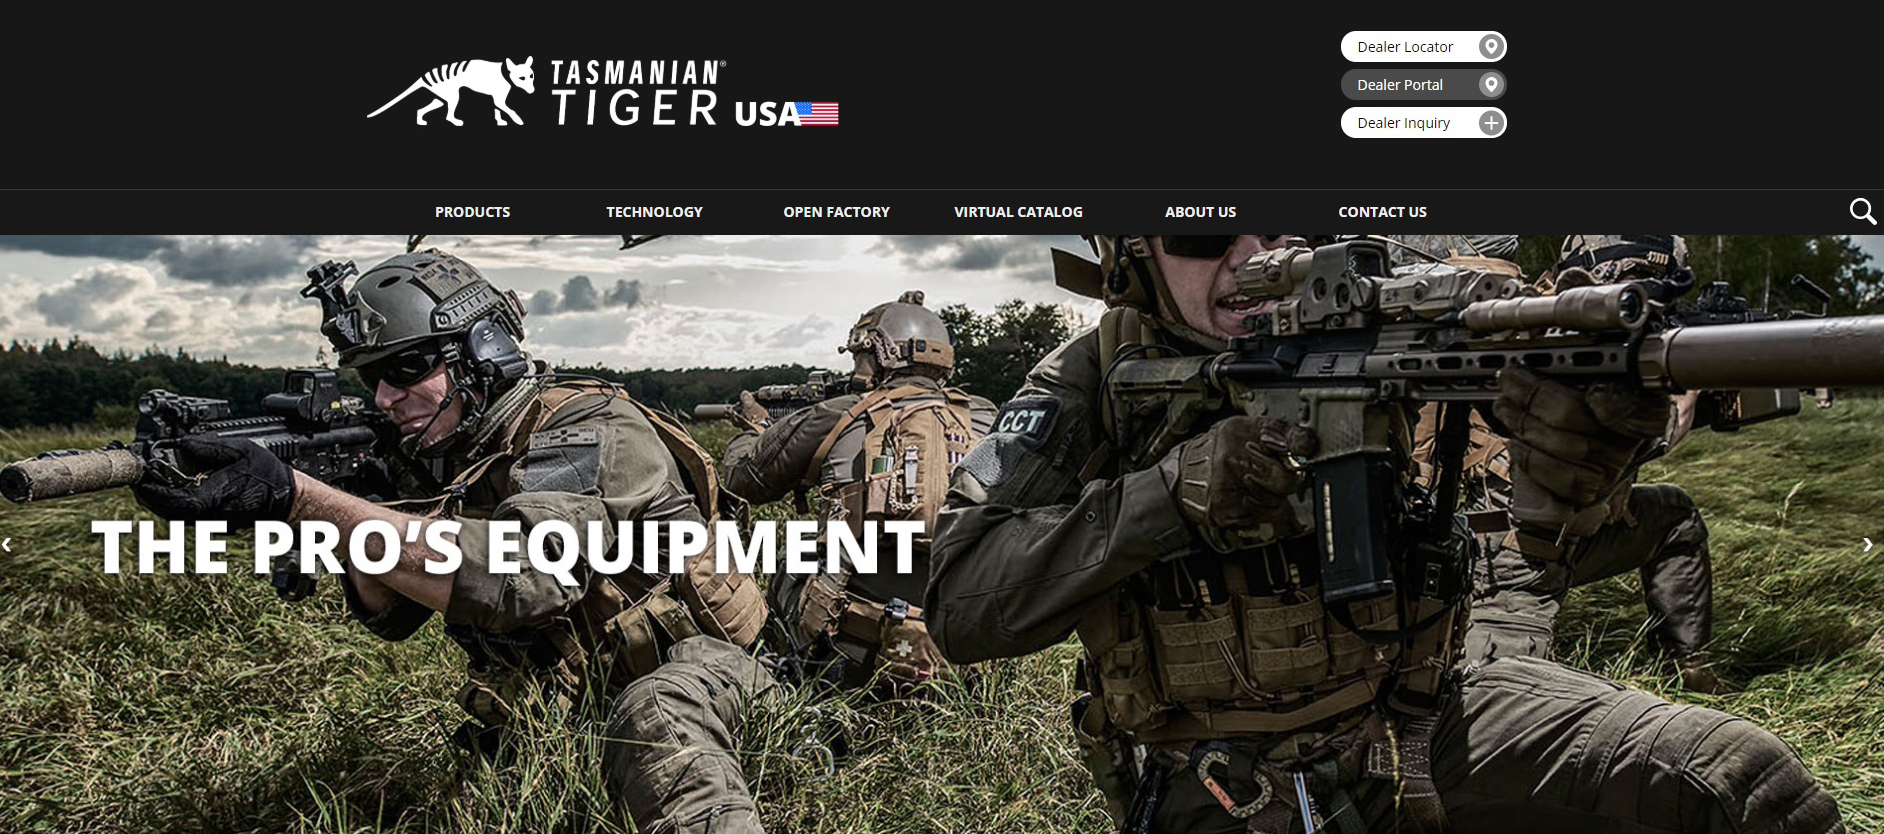 Tasmanian Tiger® USA Launches New Website and Social Media Platforms